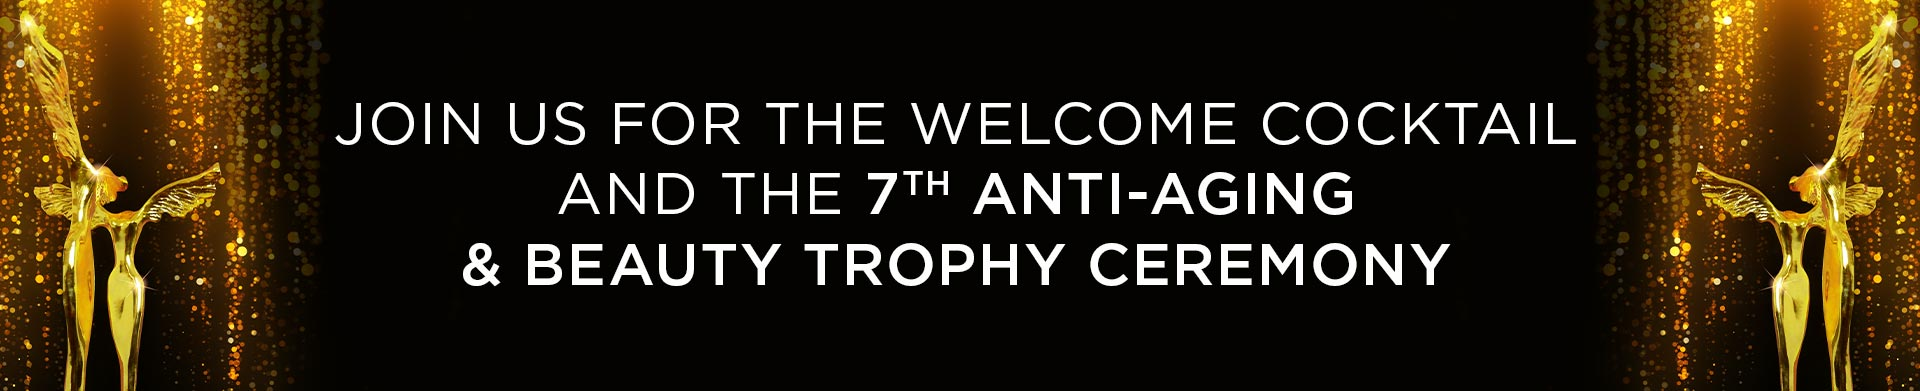 JOIN US FOR THE WELCOME COCKTAIL AND  THE 7TH ANTI-AGING & BEAUTY TROPHY CEREMONY